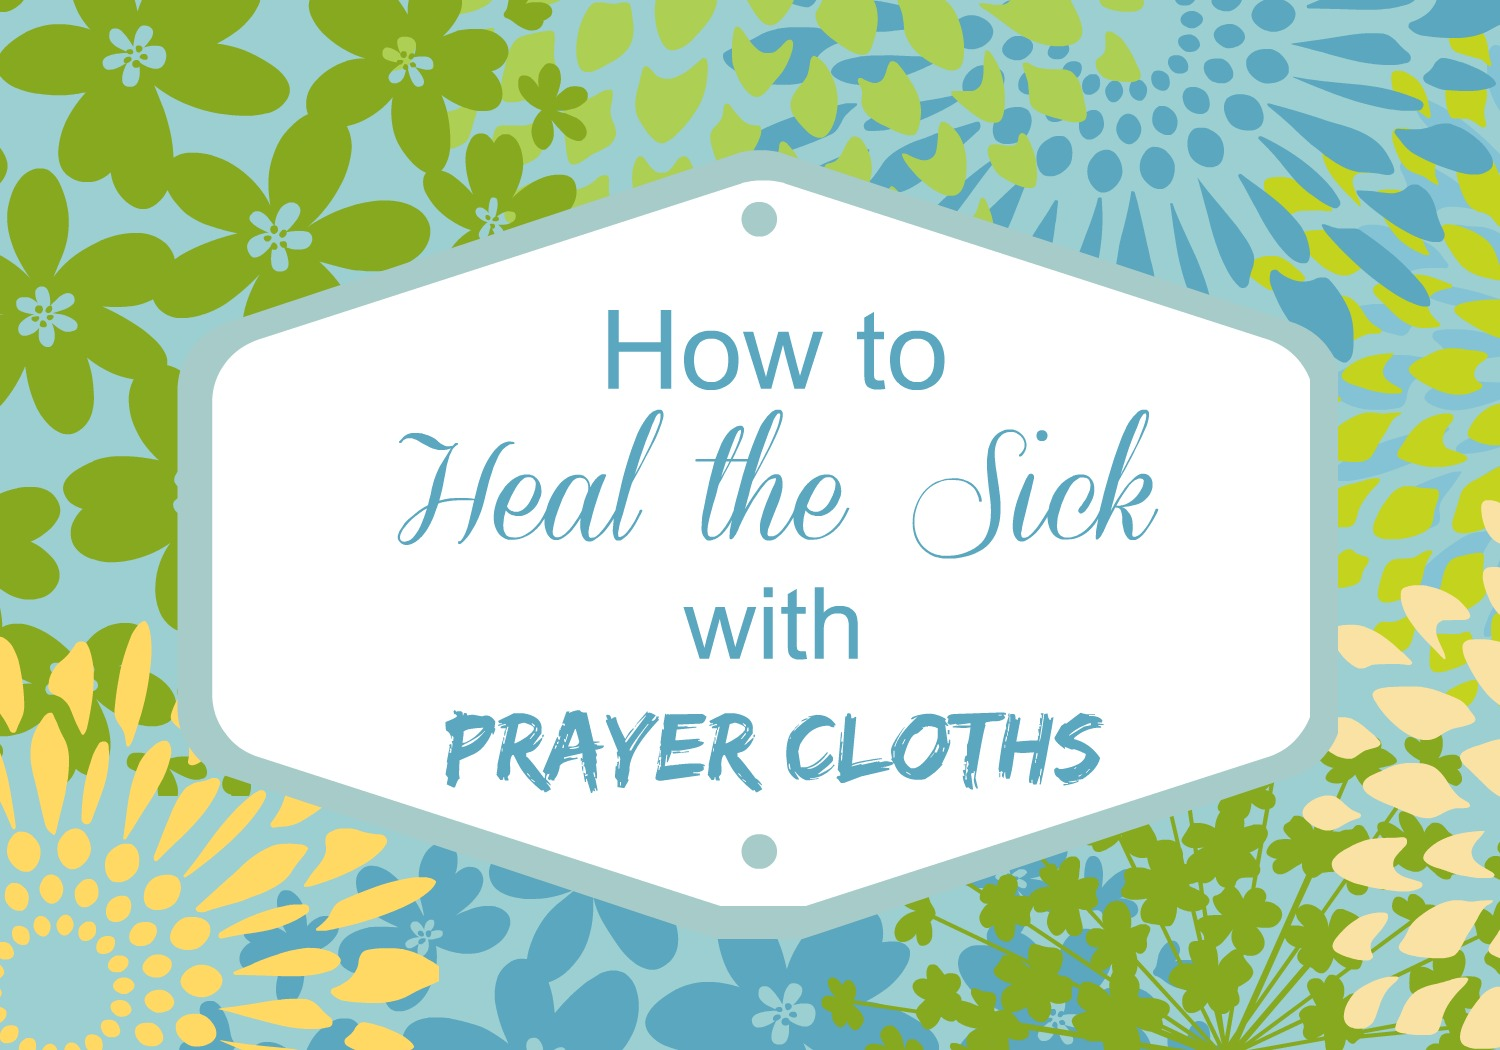 How To Heal The Sick With Prayer Cloths